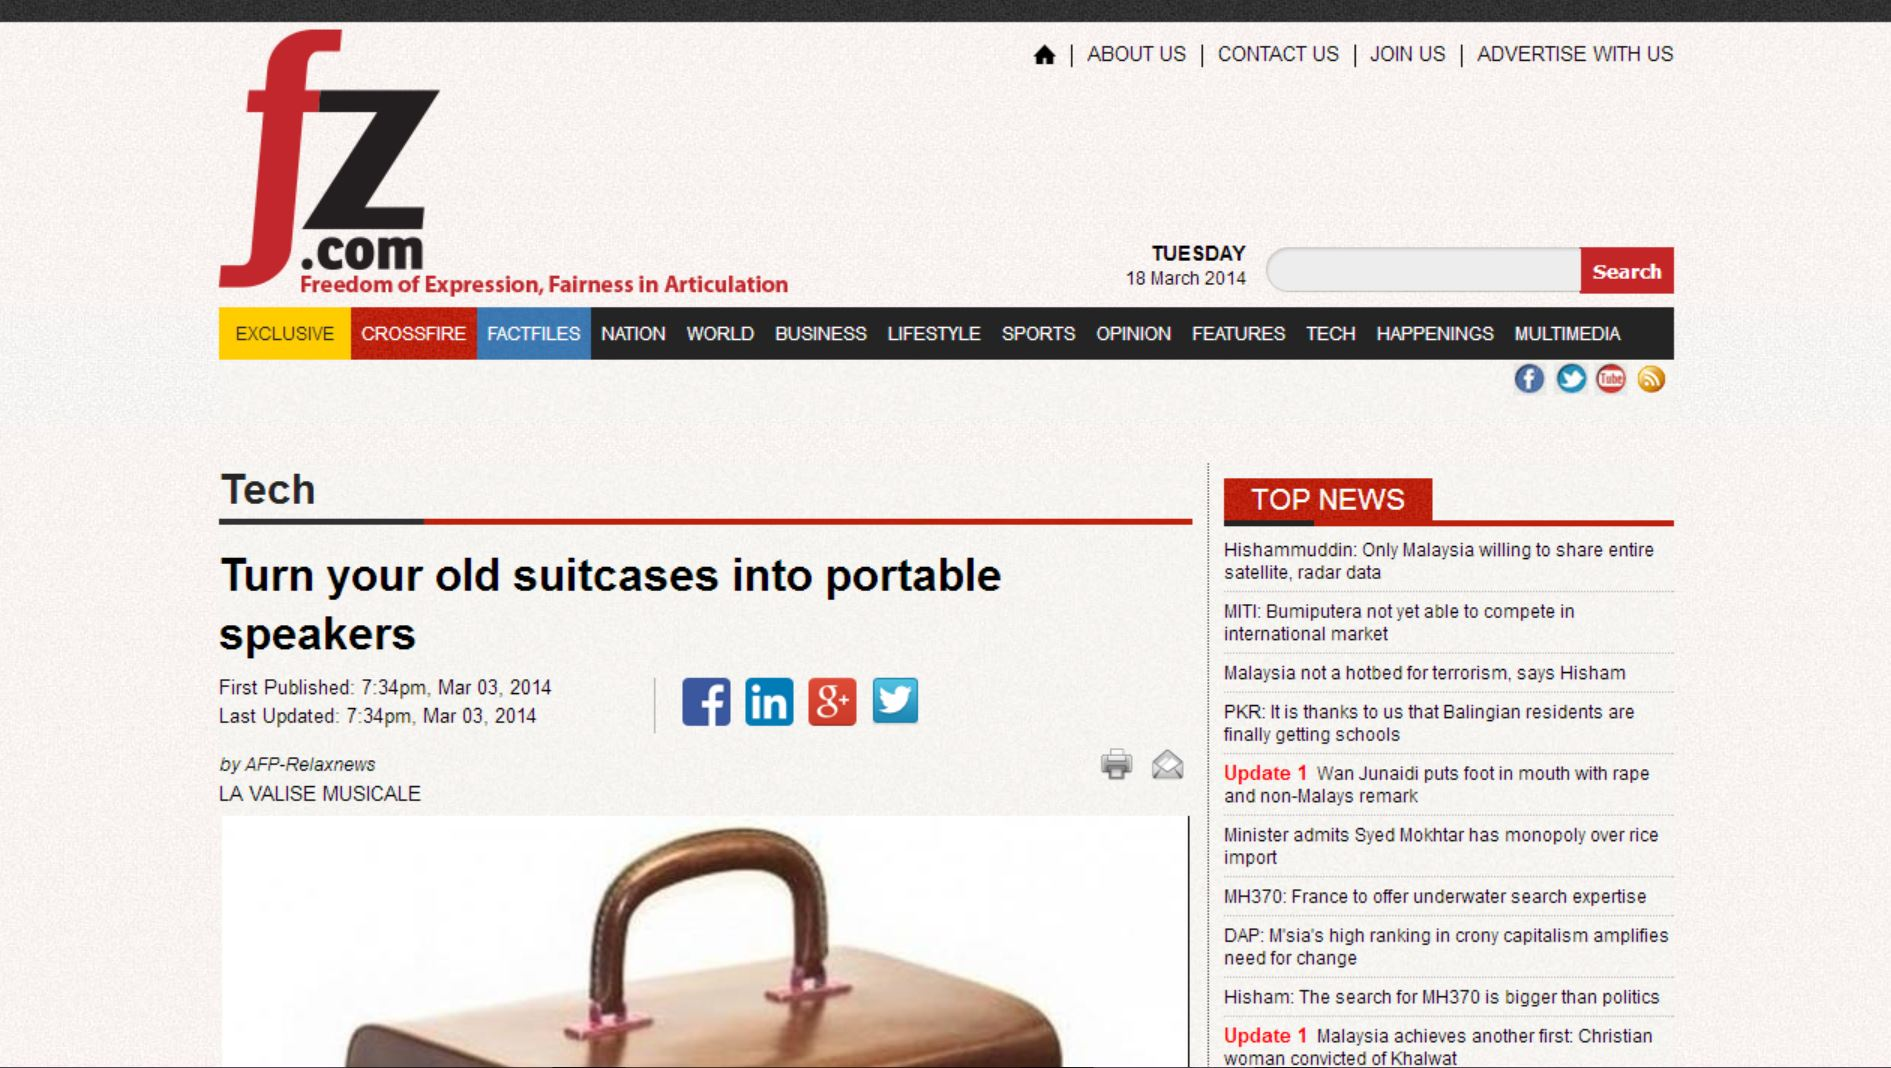 valise-musicale_article_fz.com